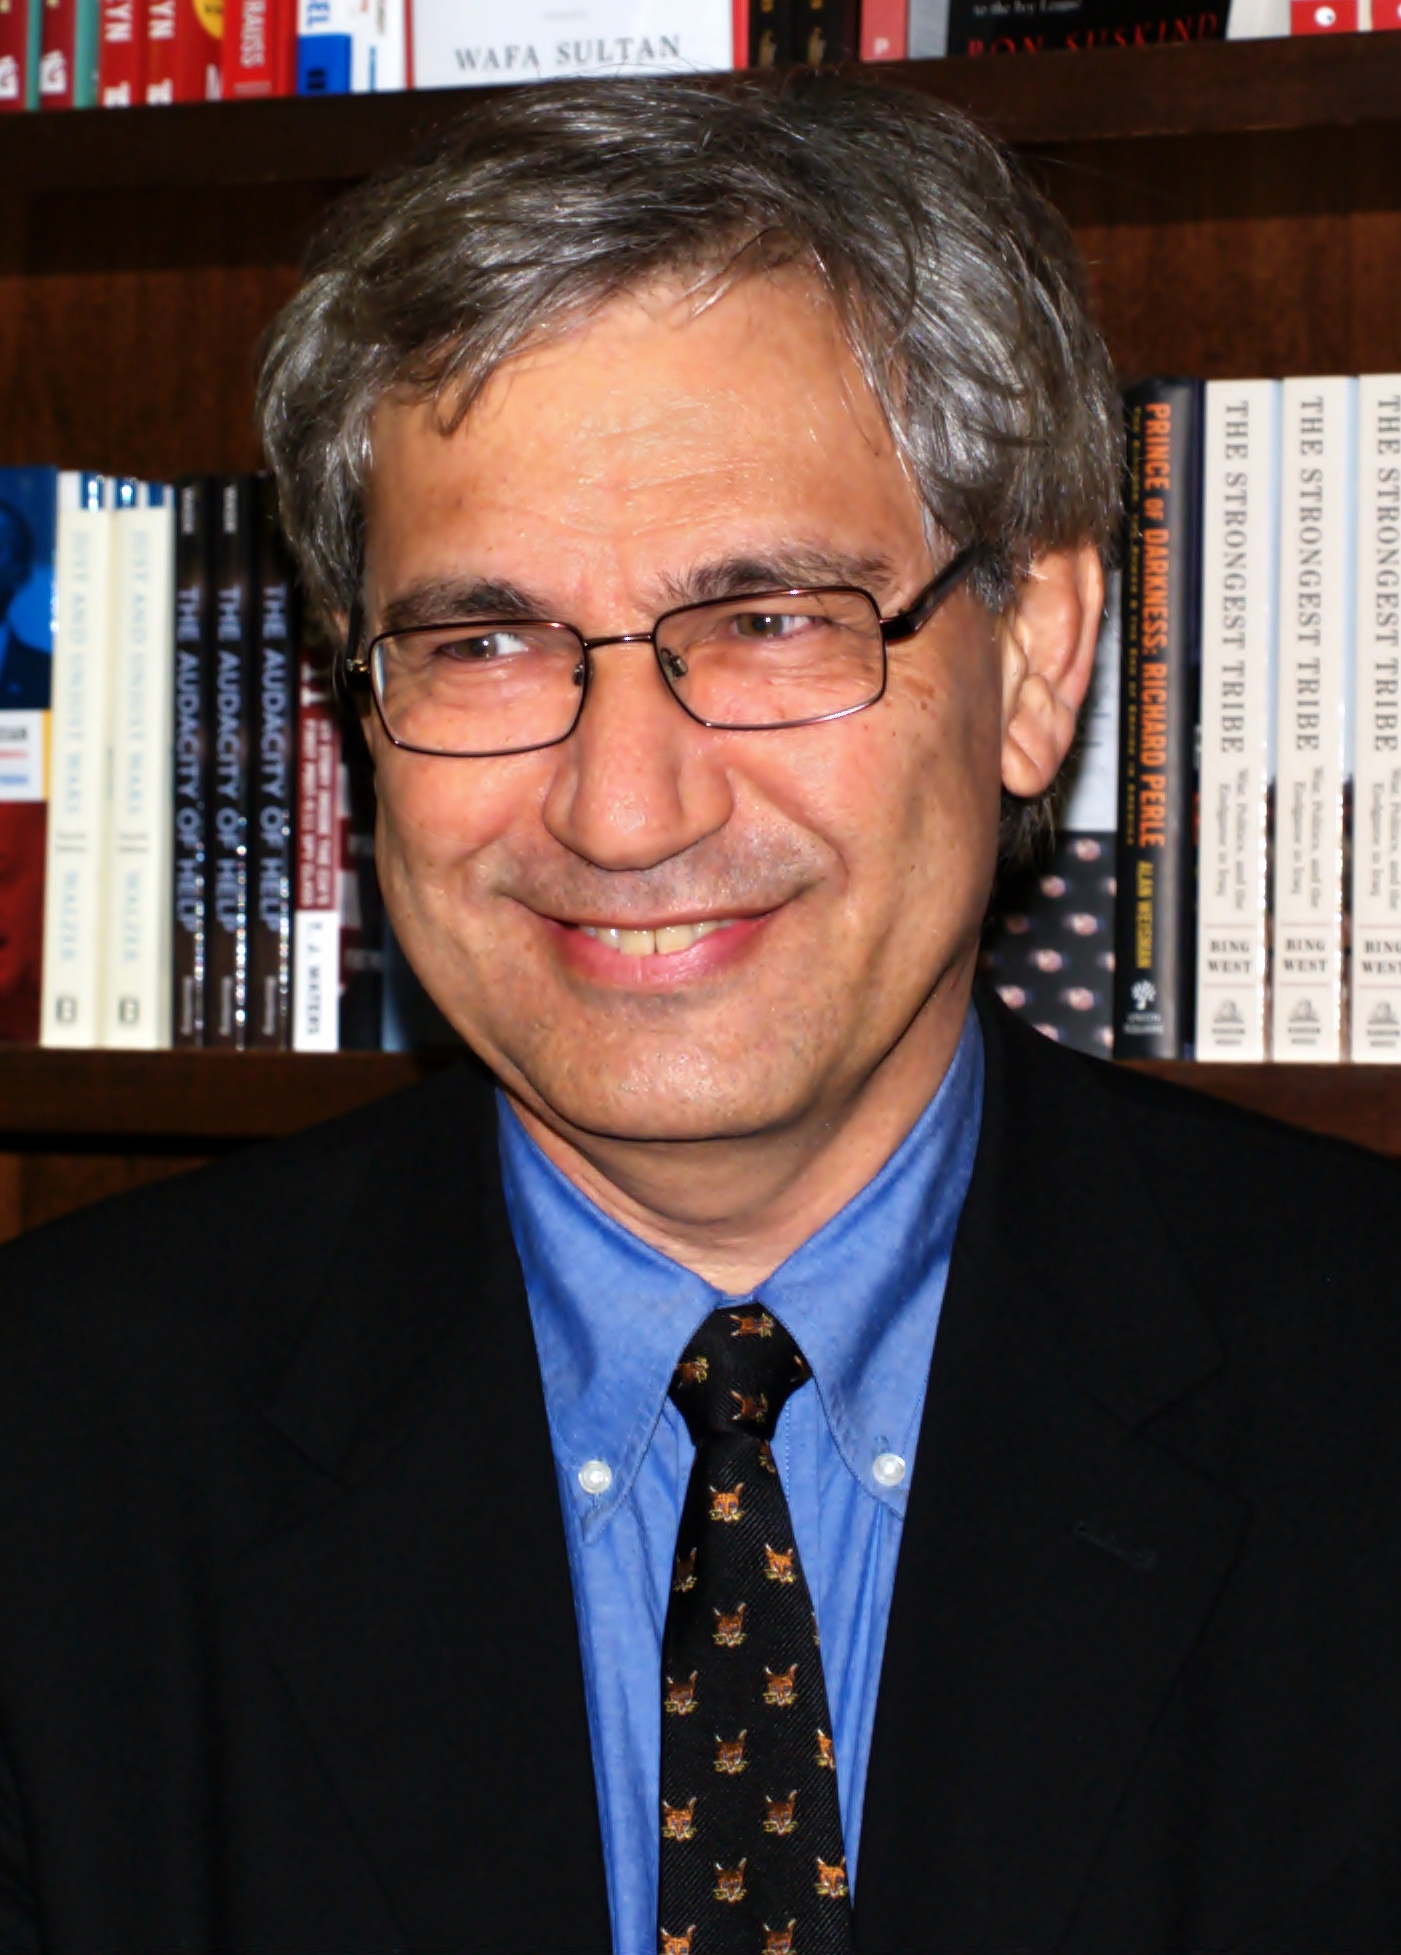 Orhan Pamuk in 2009